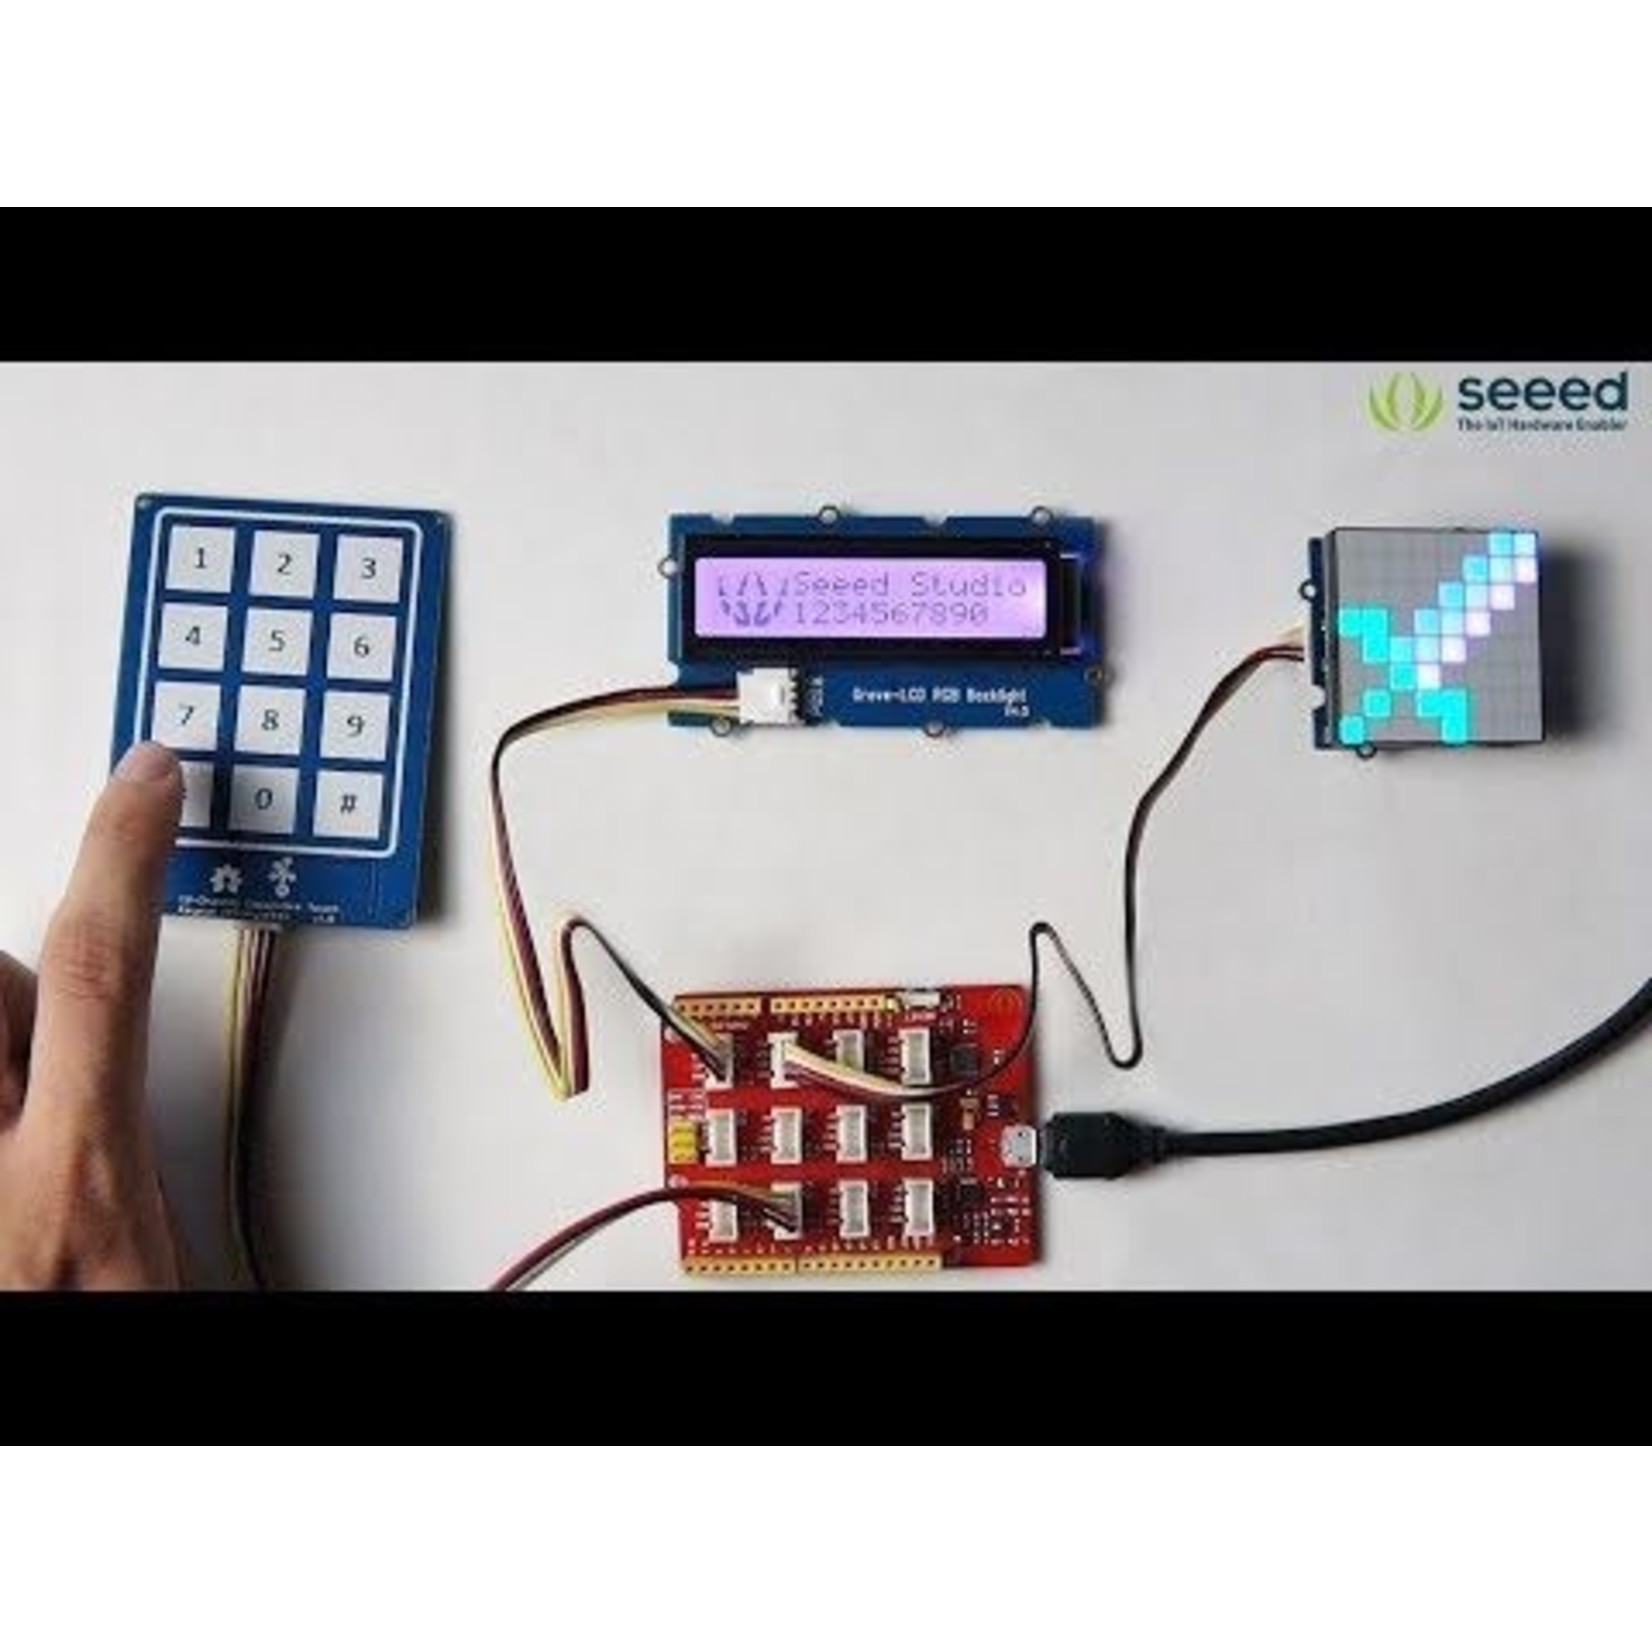 Seeed Grove - 12-Channel Capacitive Touch Keypad (ATtiny1616)